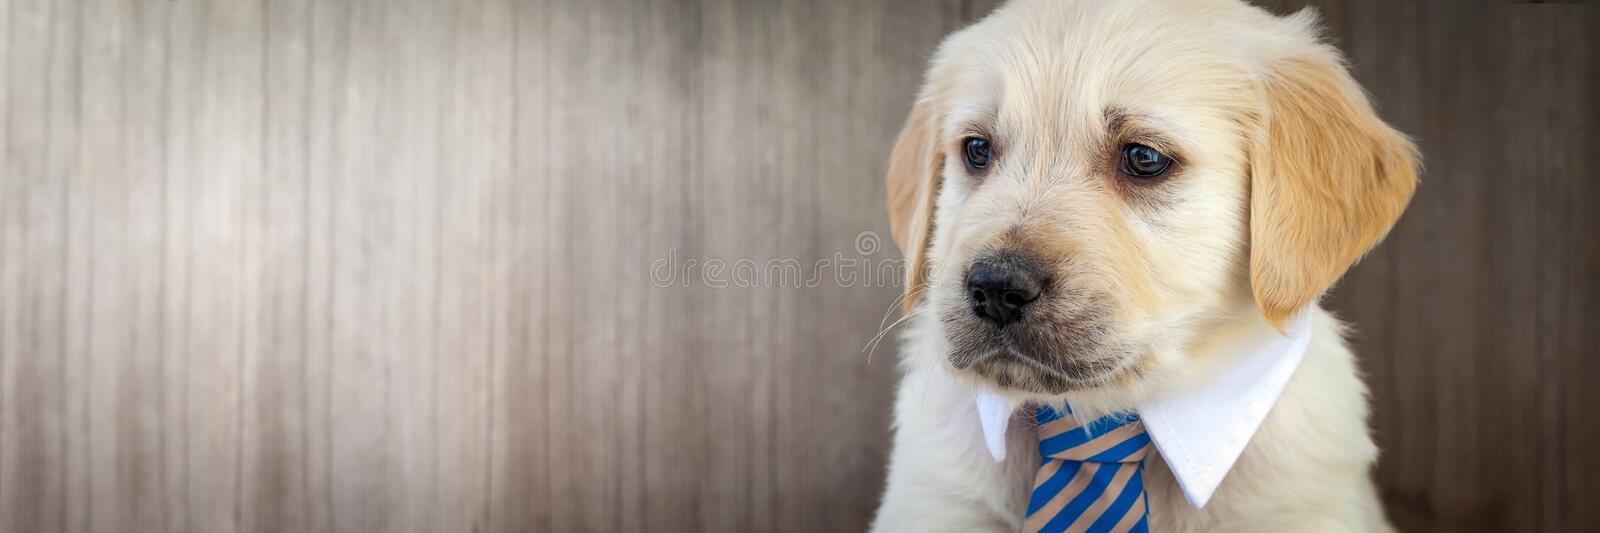 Little Business Puppy stock images